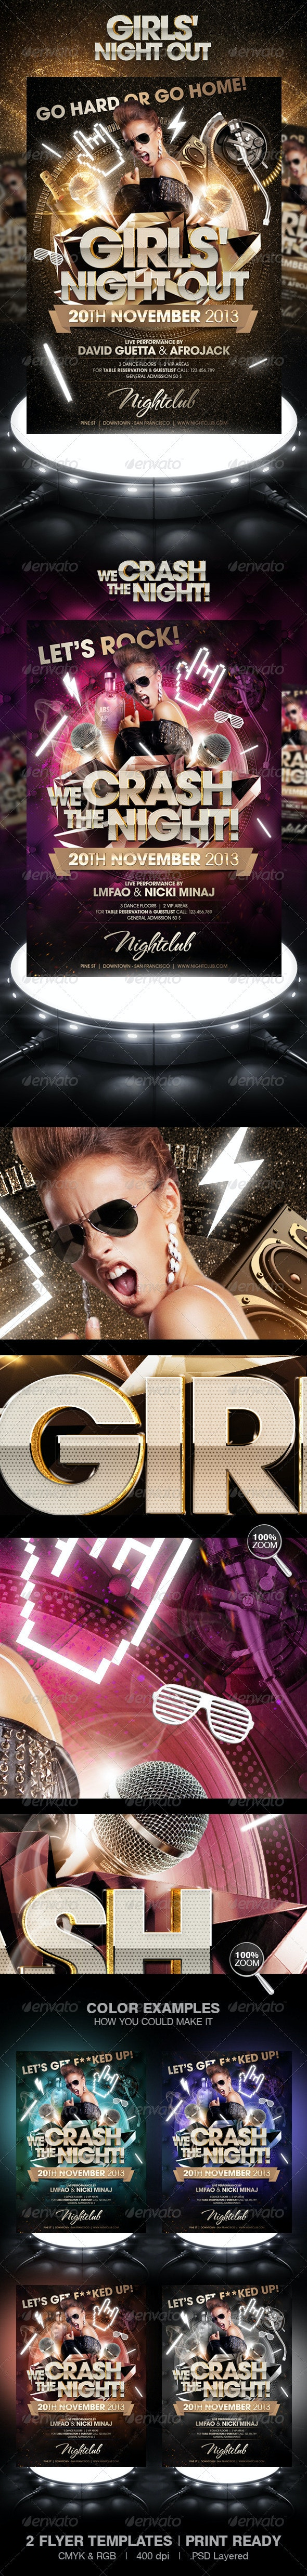 Girls Night Out / We Crash The Night Party Flyer - Clubs & Parties Events